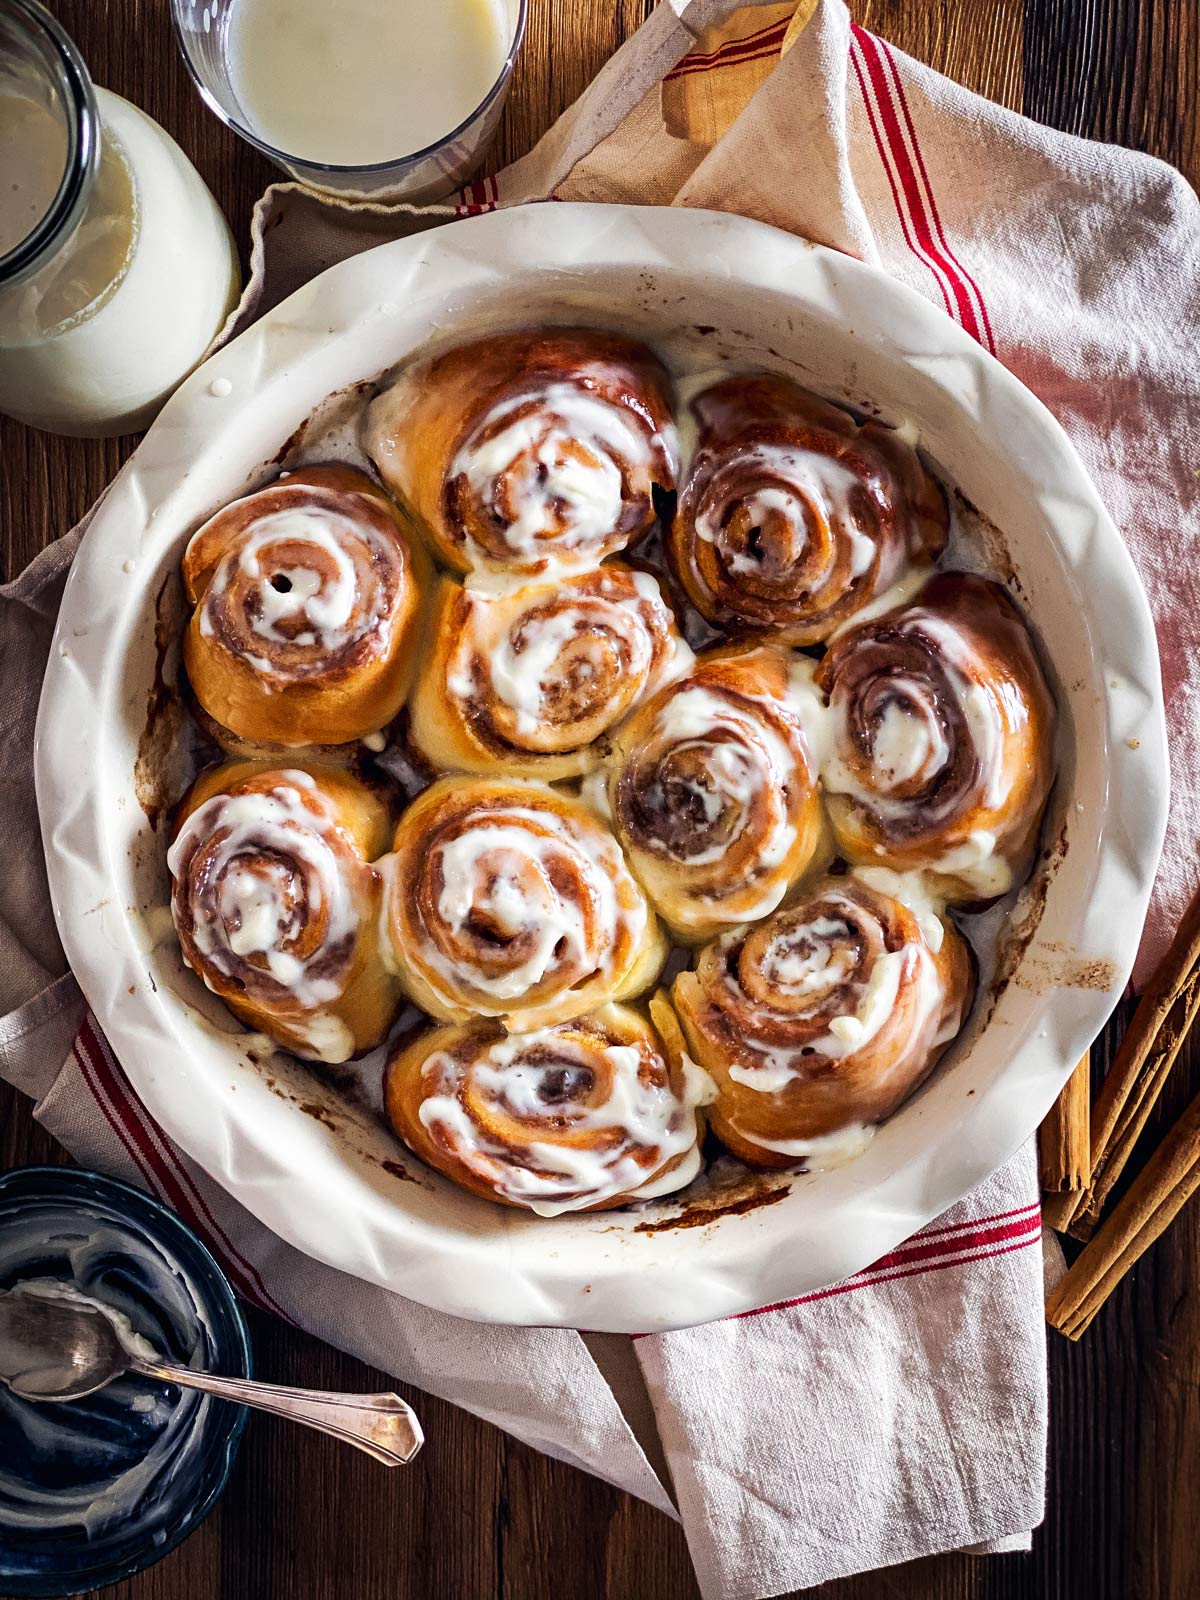 round pan with baked cinnamon rolls on wooden surface